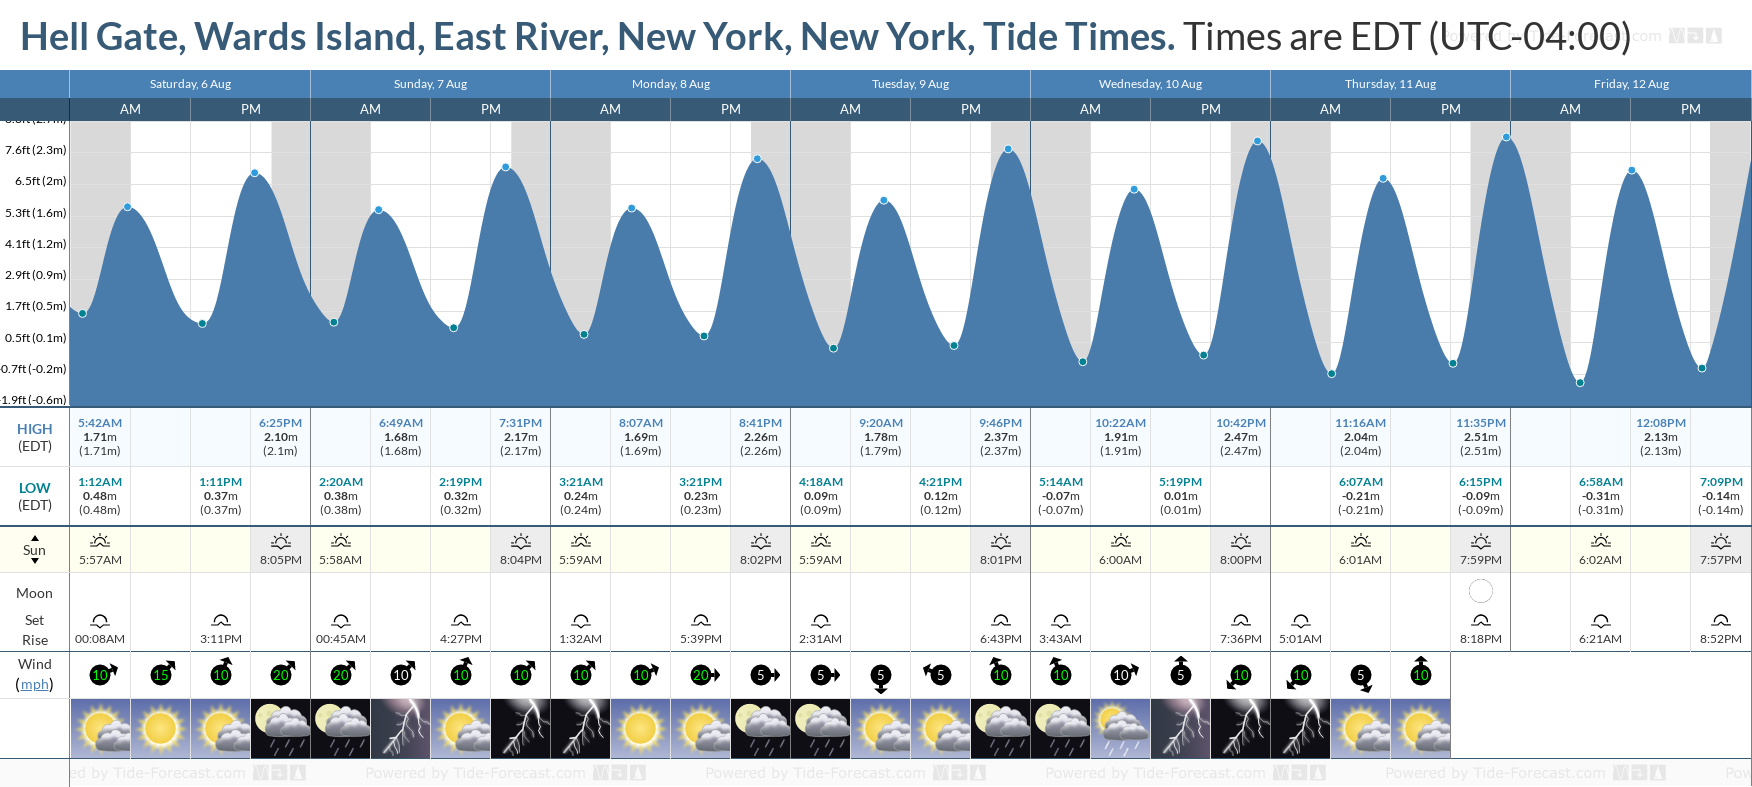 Hell Gate, Wards Island, East River, New York, New York Tide Chart including high and low tide tide times for the next 7 days